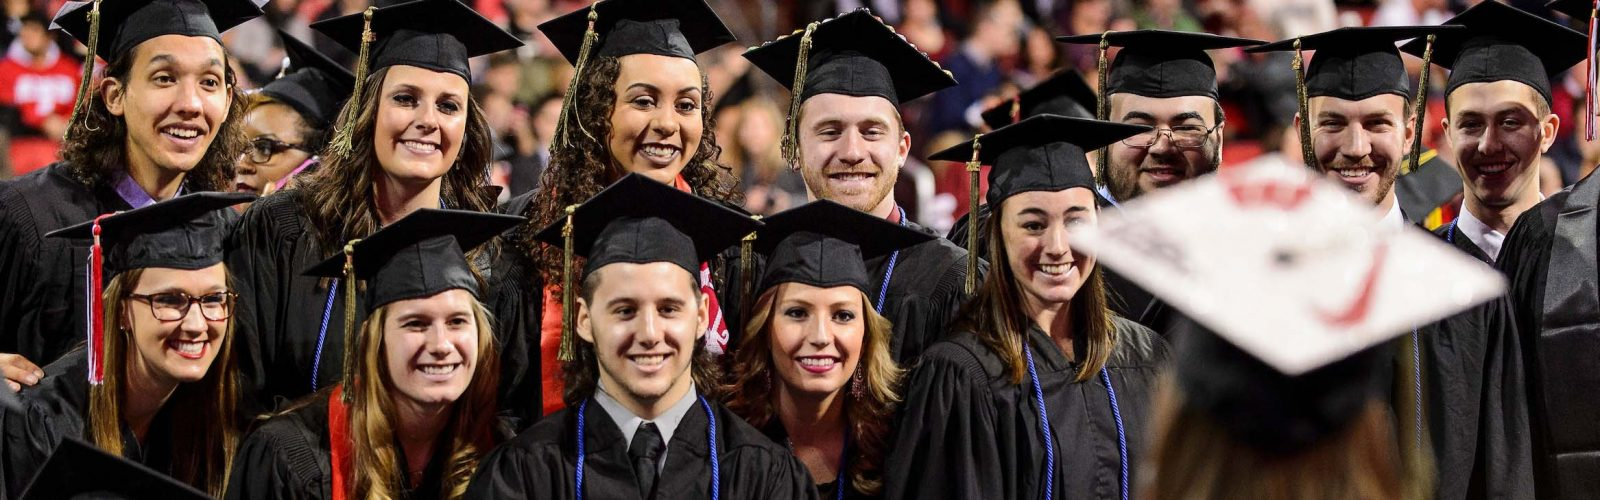 A group of graduates pose for a photo during UW-Madison's winter commencement ceremony at the Kohl Center at the University of Wisconsin-Madison on Dec. 20, 2015. The indoor graduation was attended by approximately 1,200 bachelor's and master's degree candidates, plus their guests. (Photo by Jeff Miller/UW-Madison)